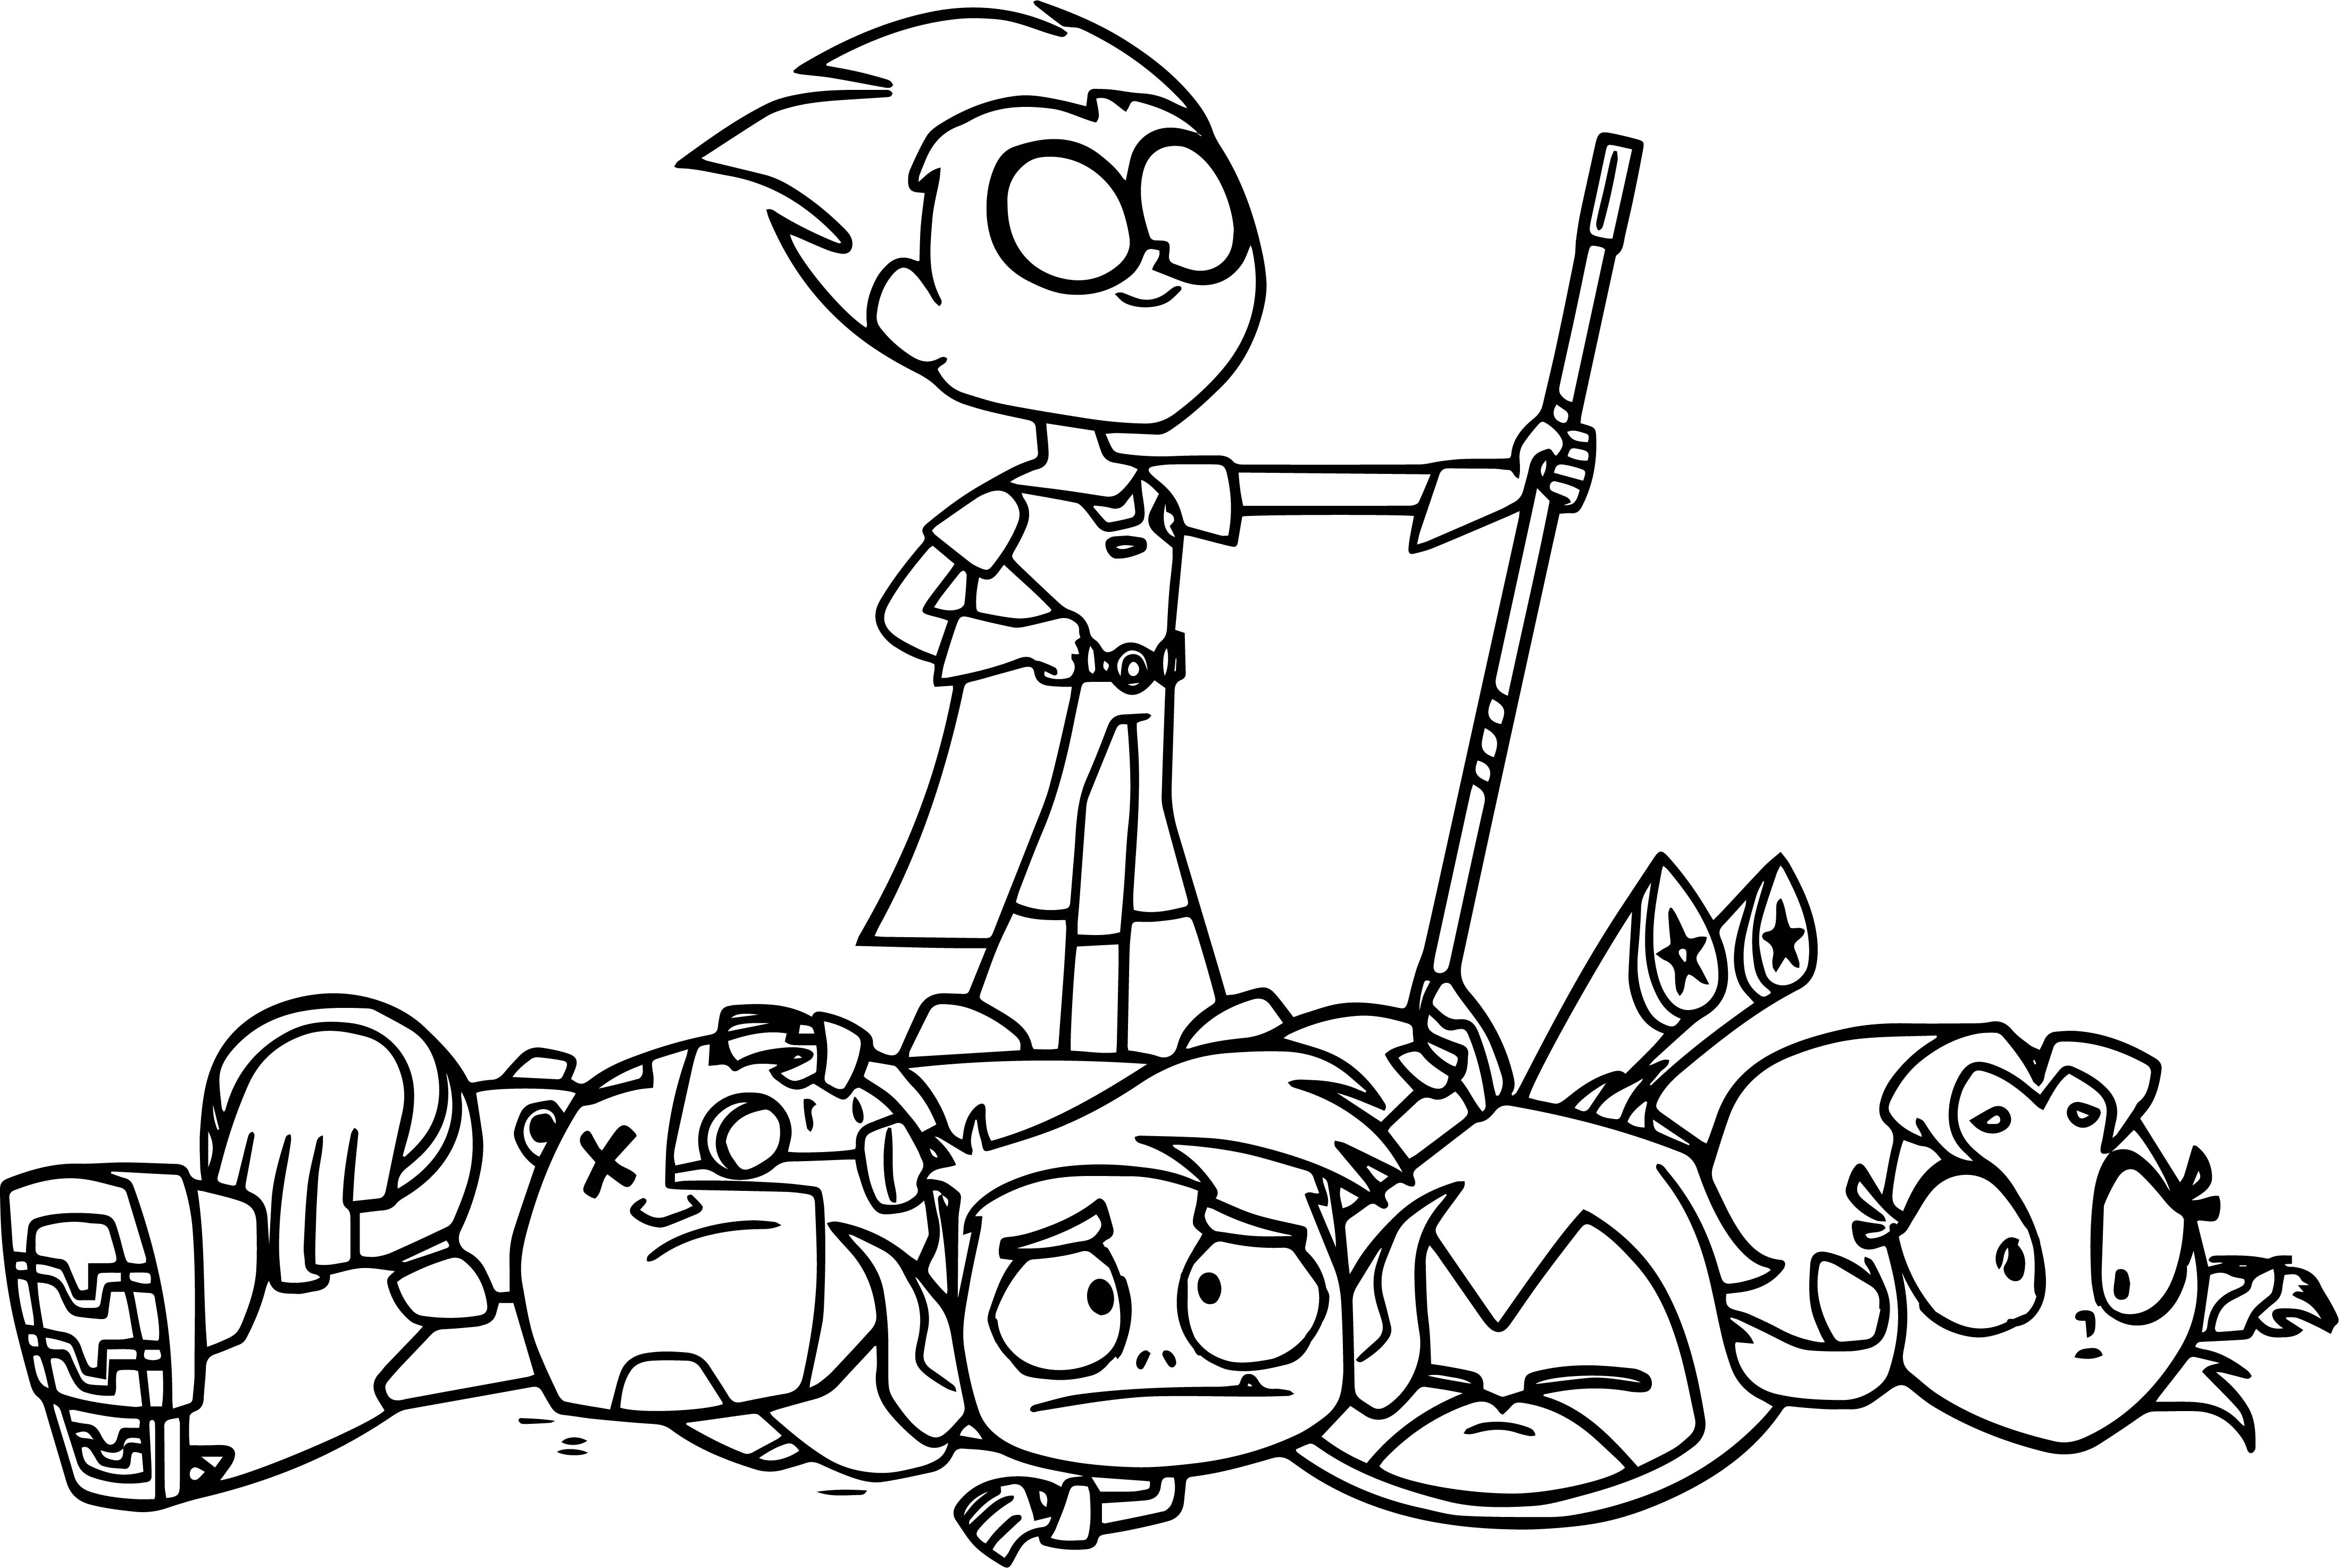 teen titans coloring pages teen titans coloring pages best coloring pages for kids titans coloring pages teen